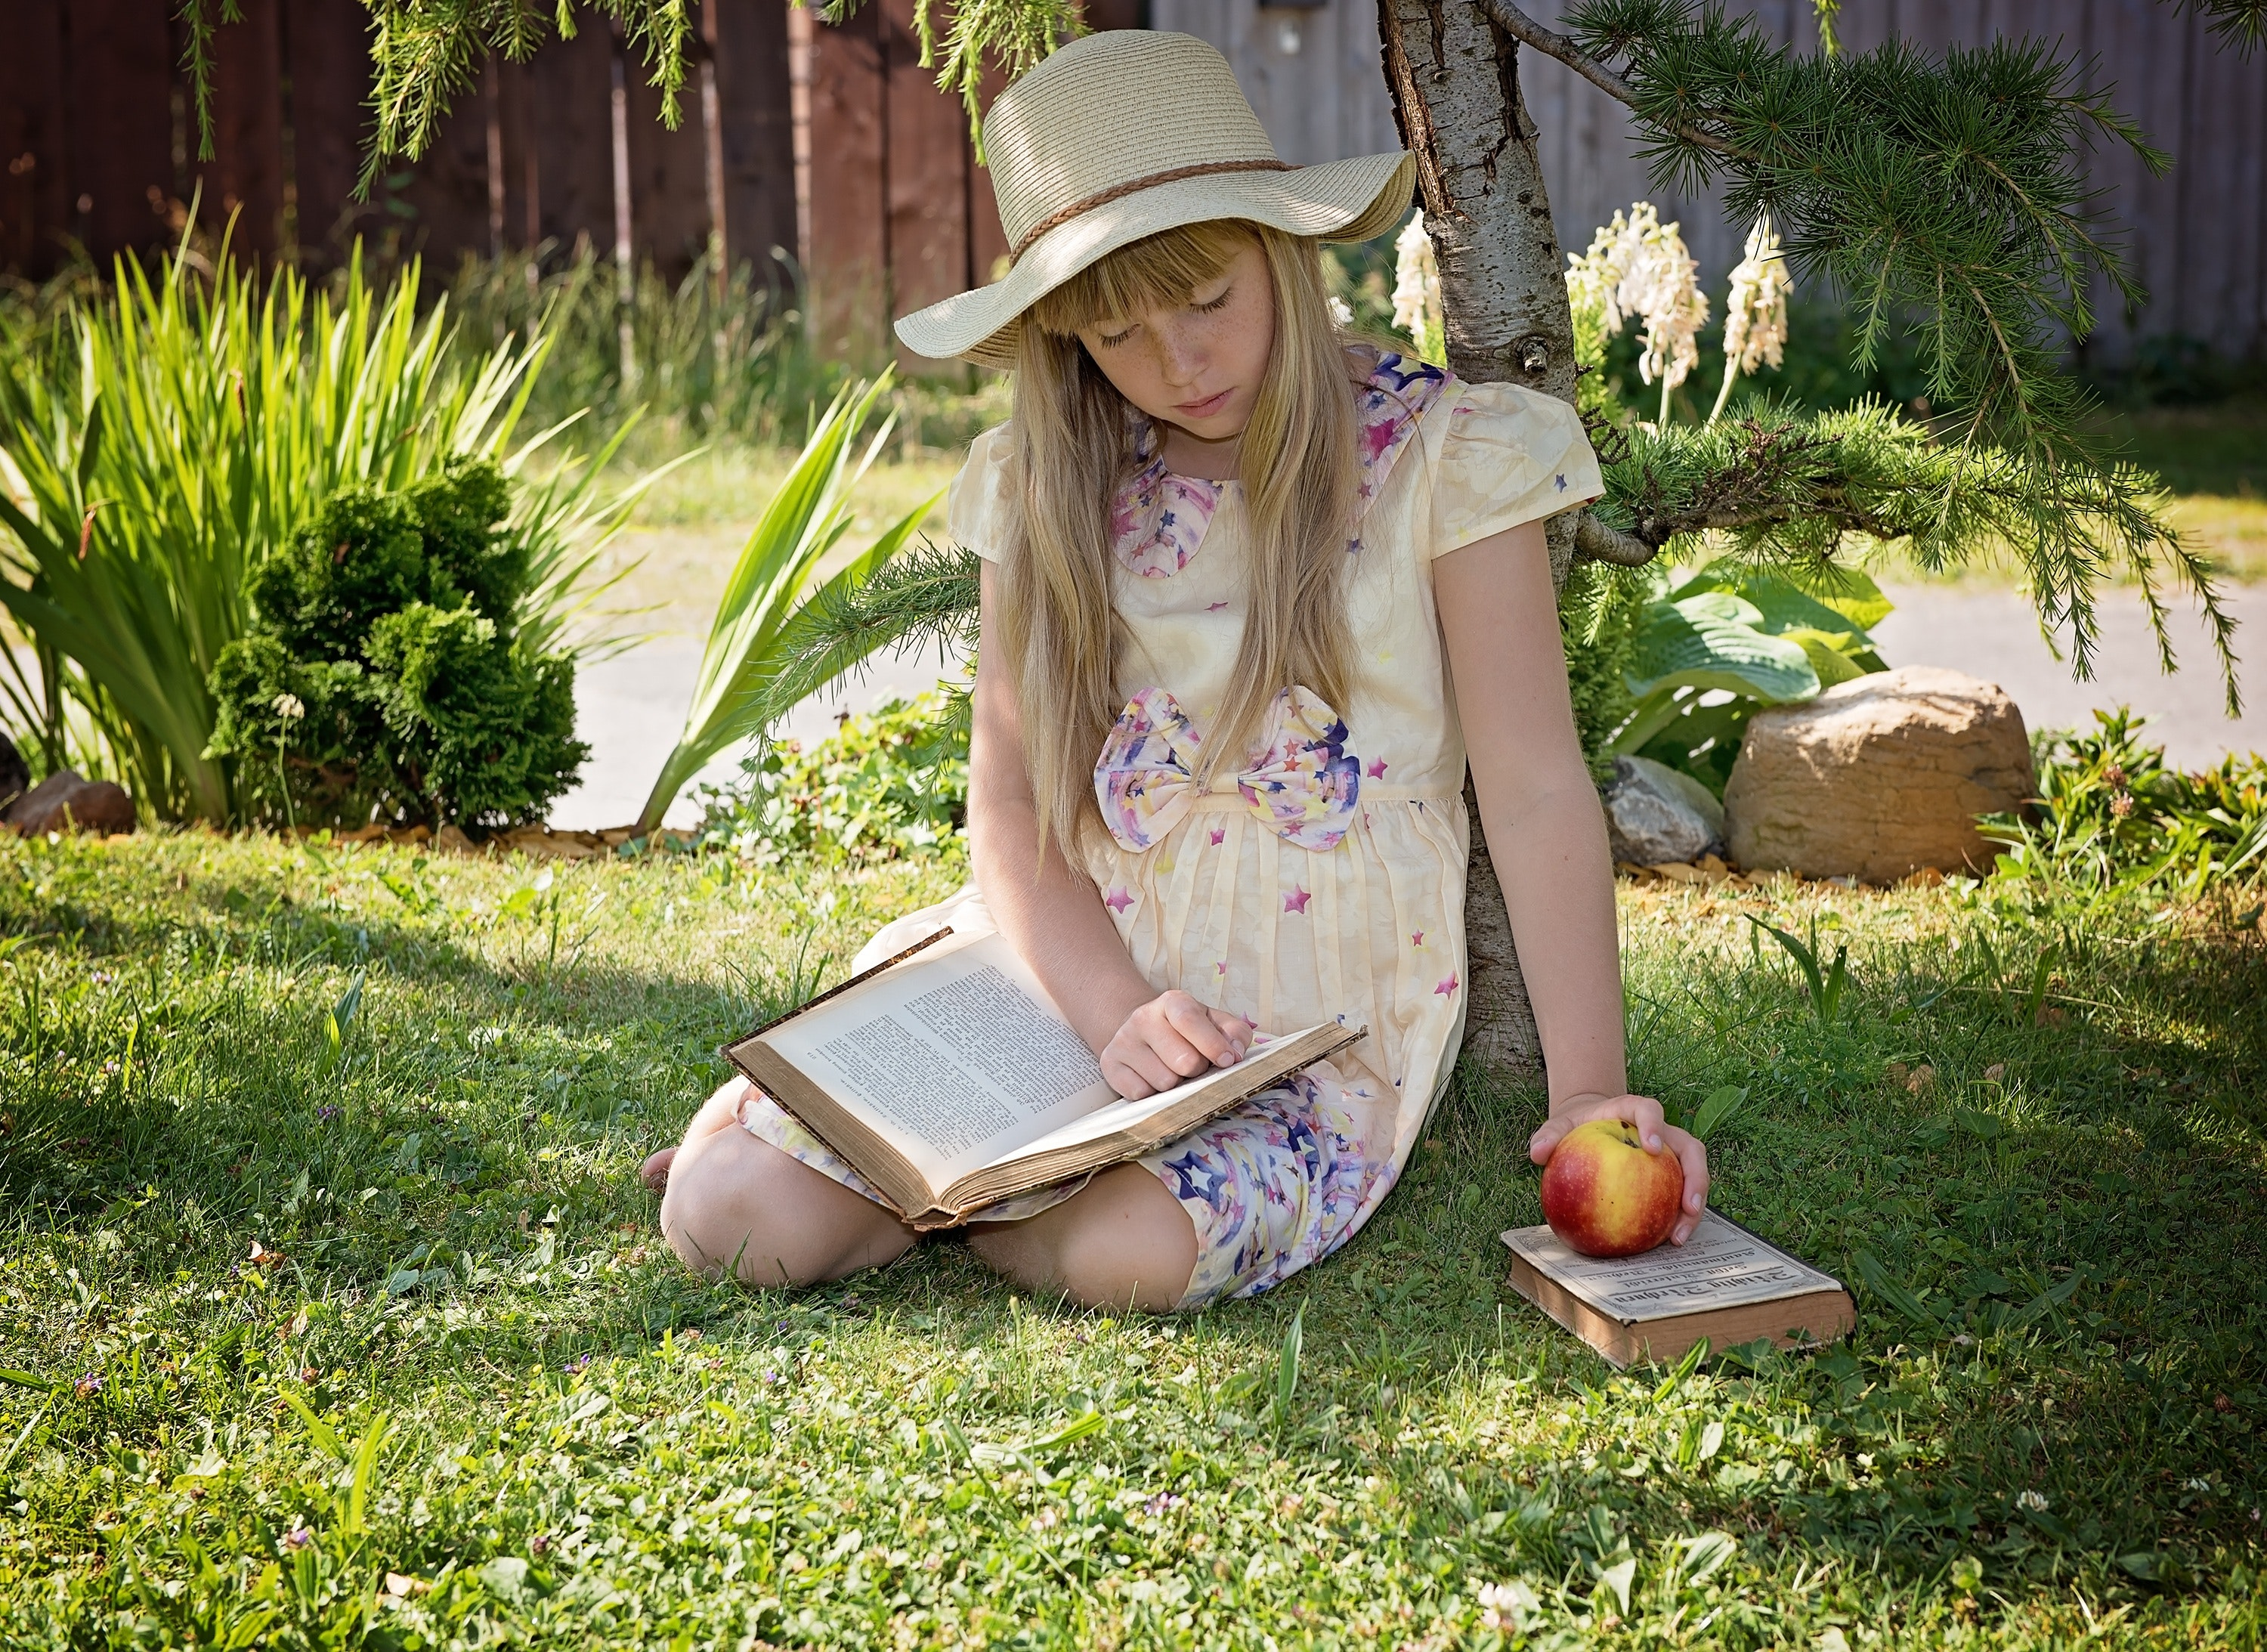 Girl Wearing White Purple and Pink Floral Short Sleeve Dress, Lawn, kid, hat, learning, HQ Photo